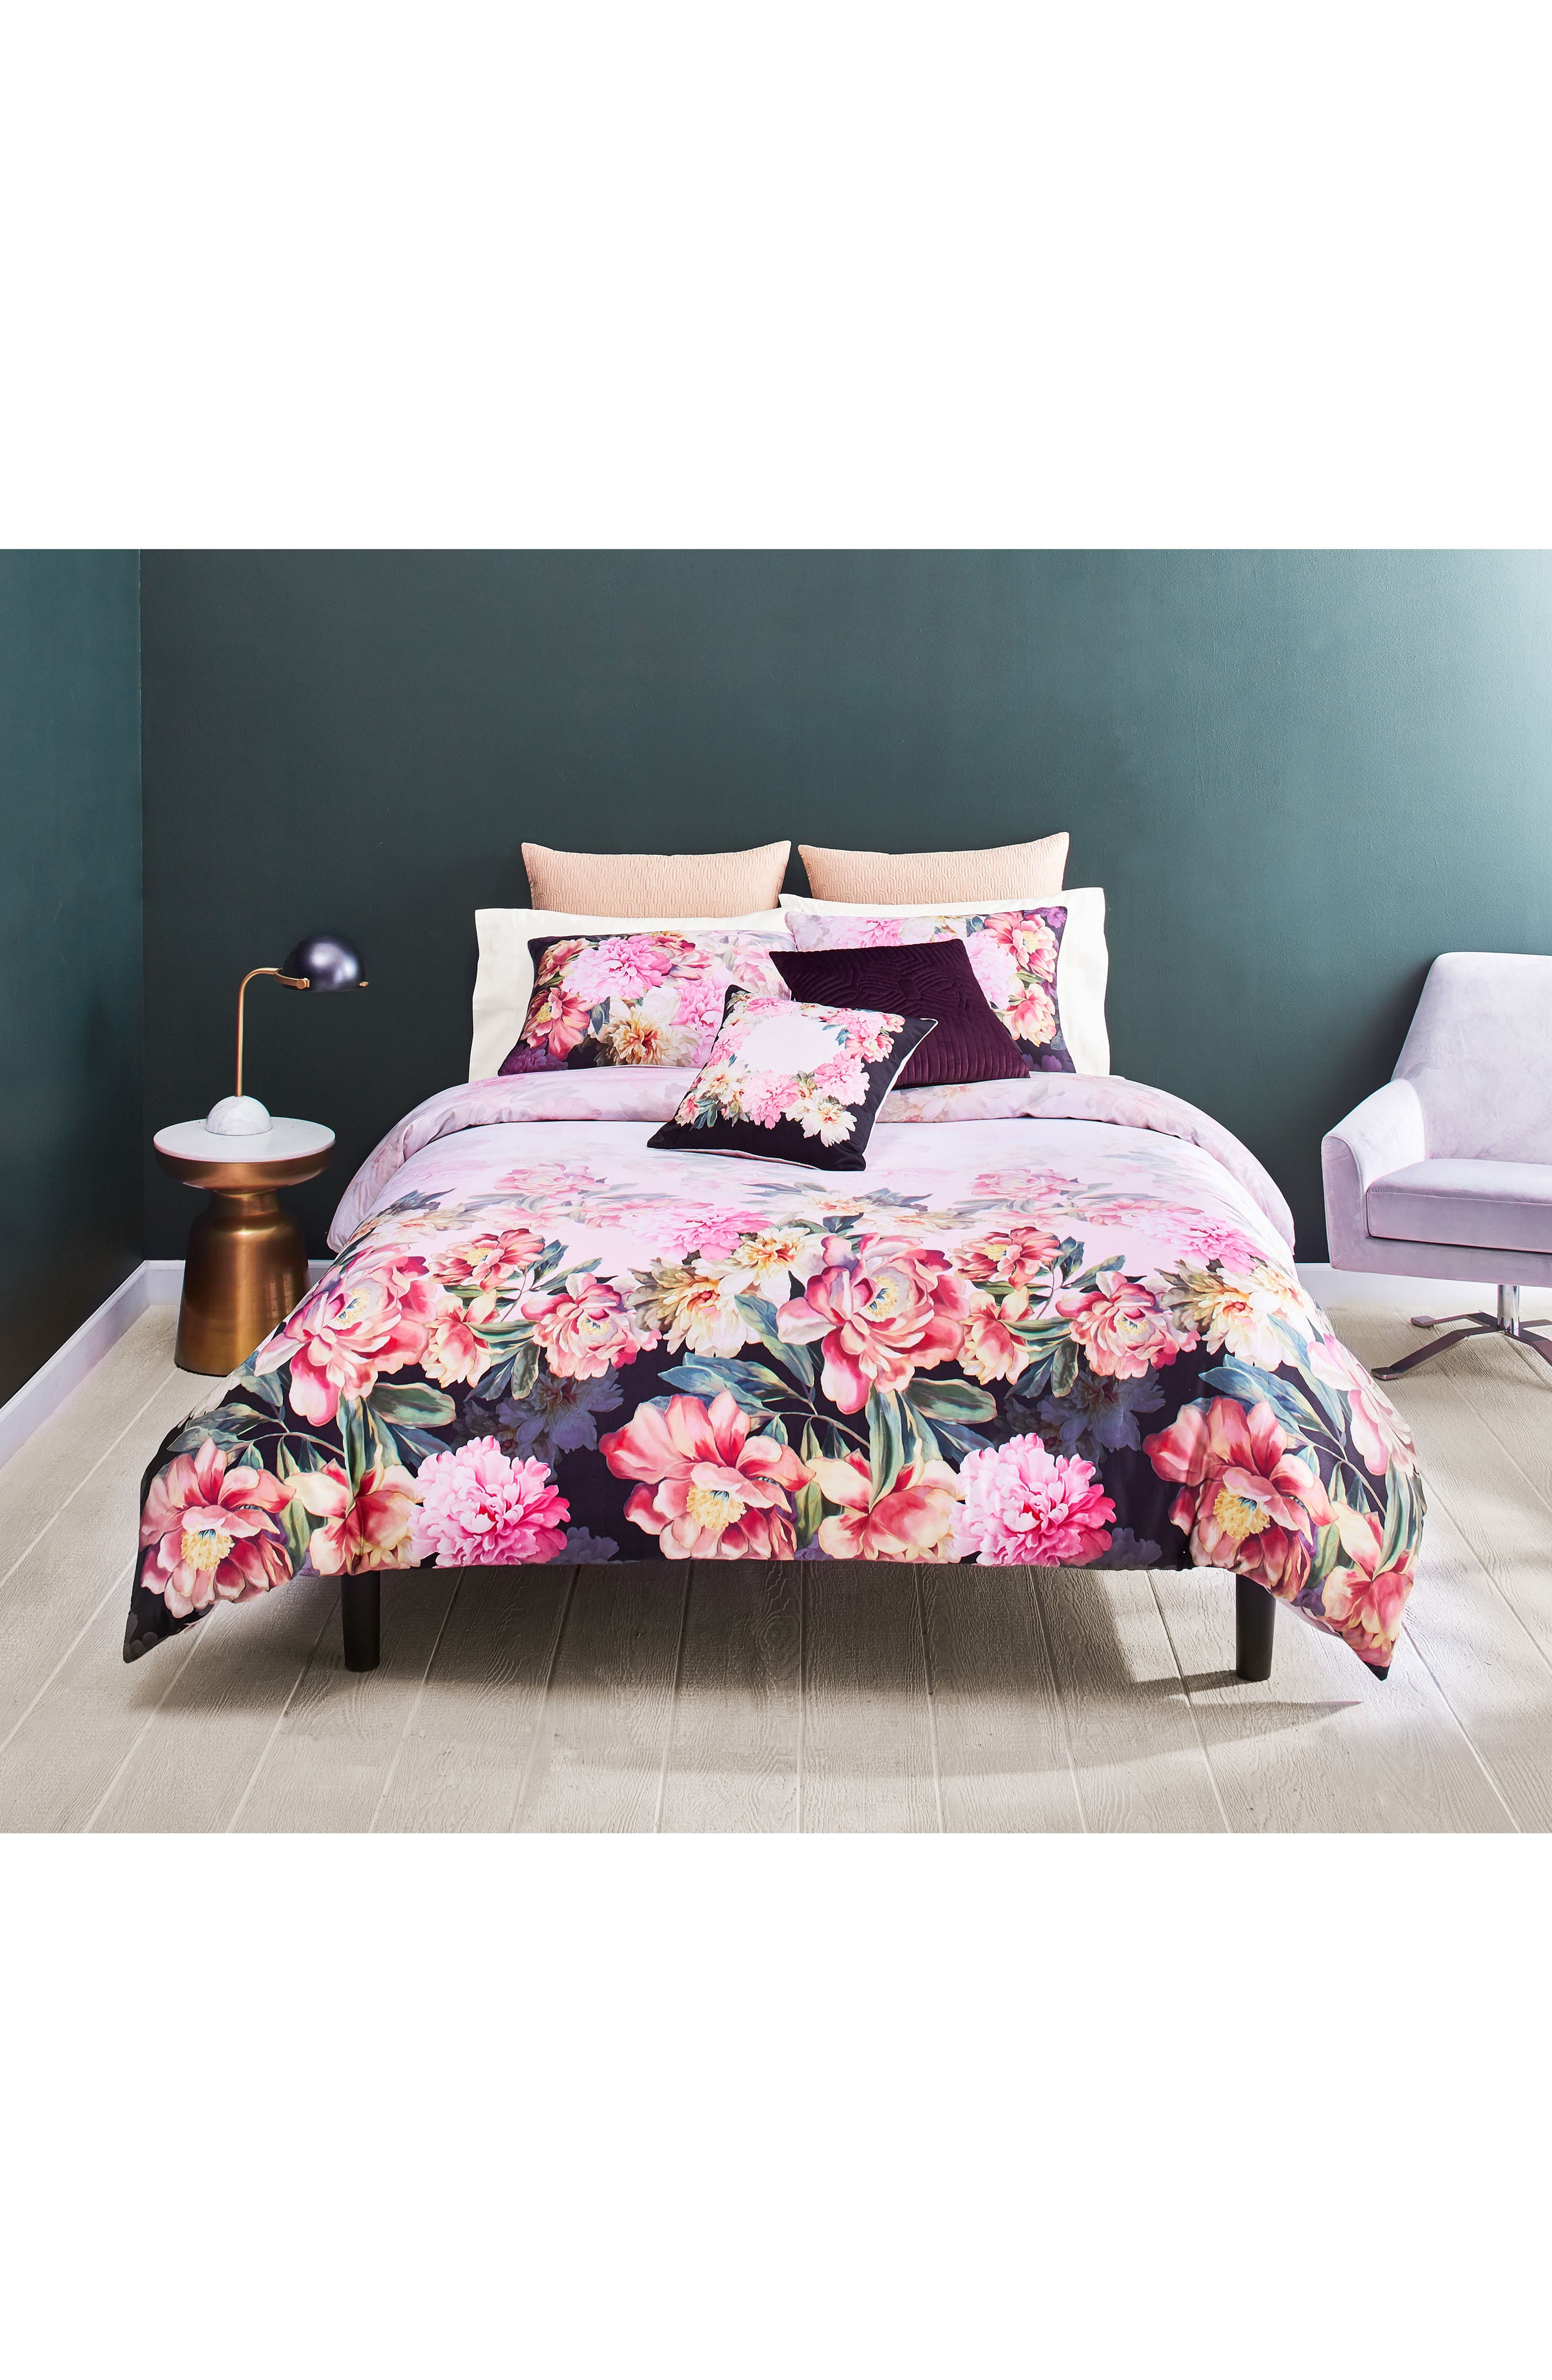 Painted Posie Duvet Cover & Sham Set,                         Main,                         color, 650